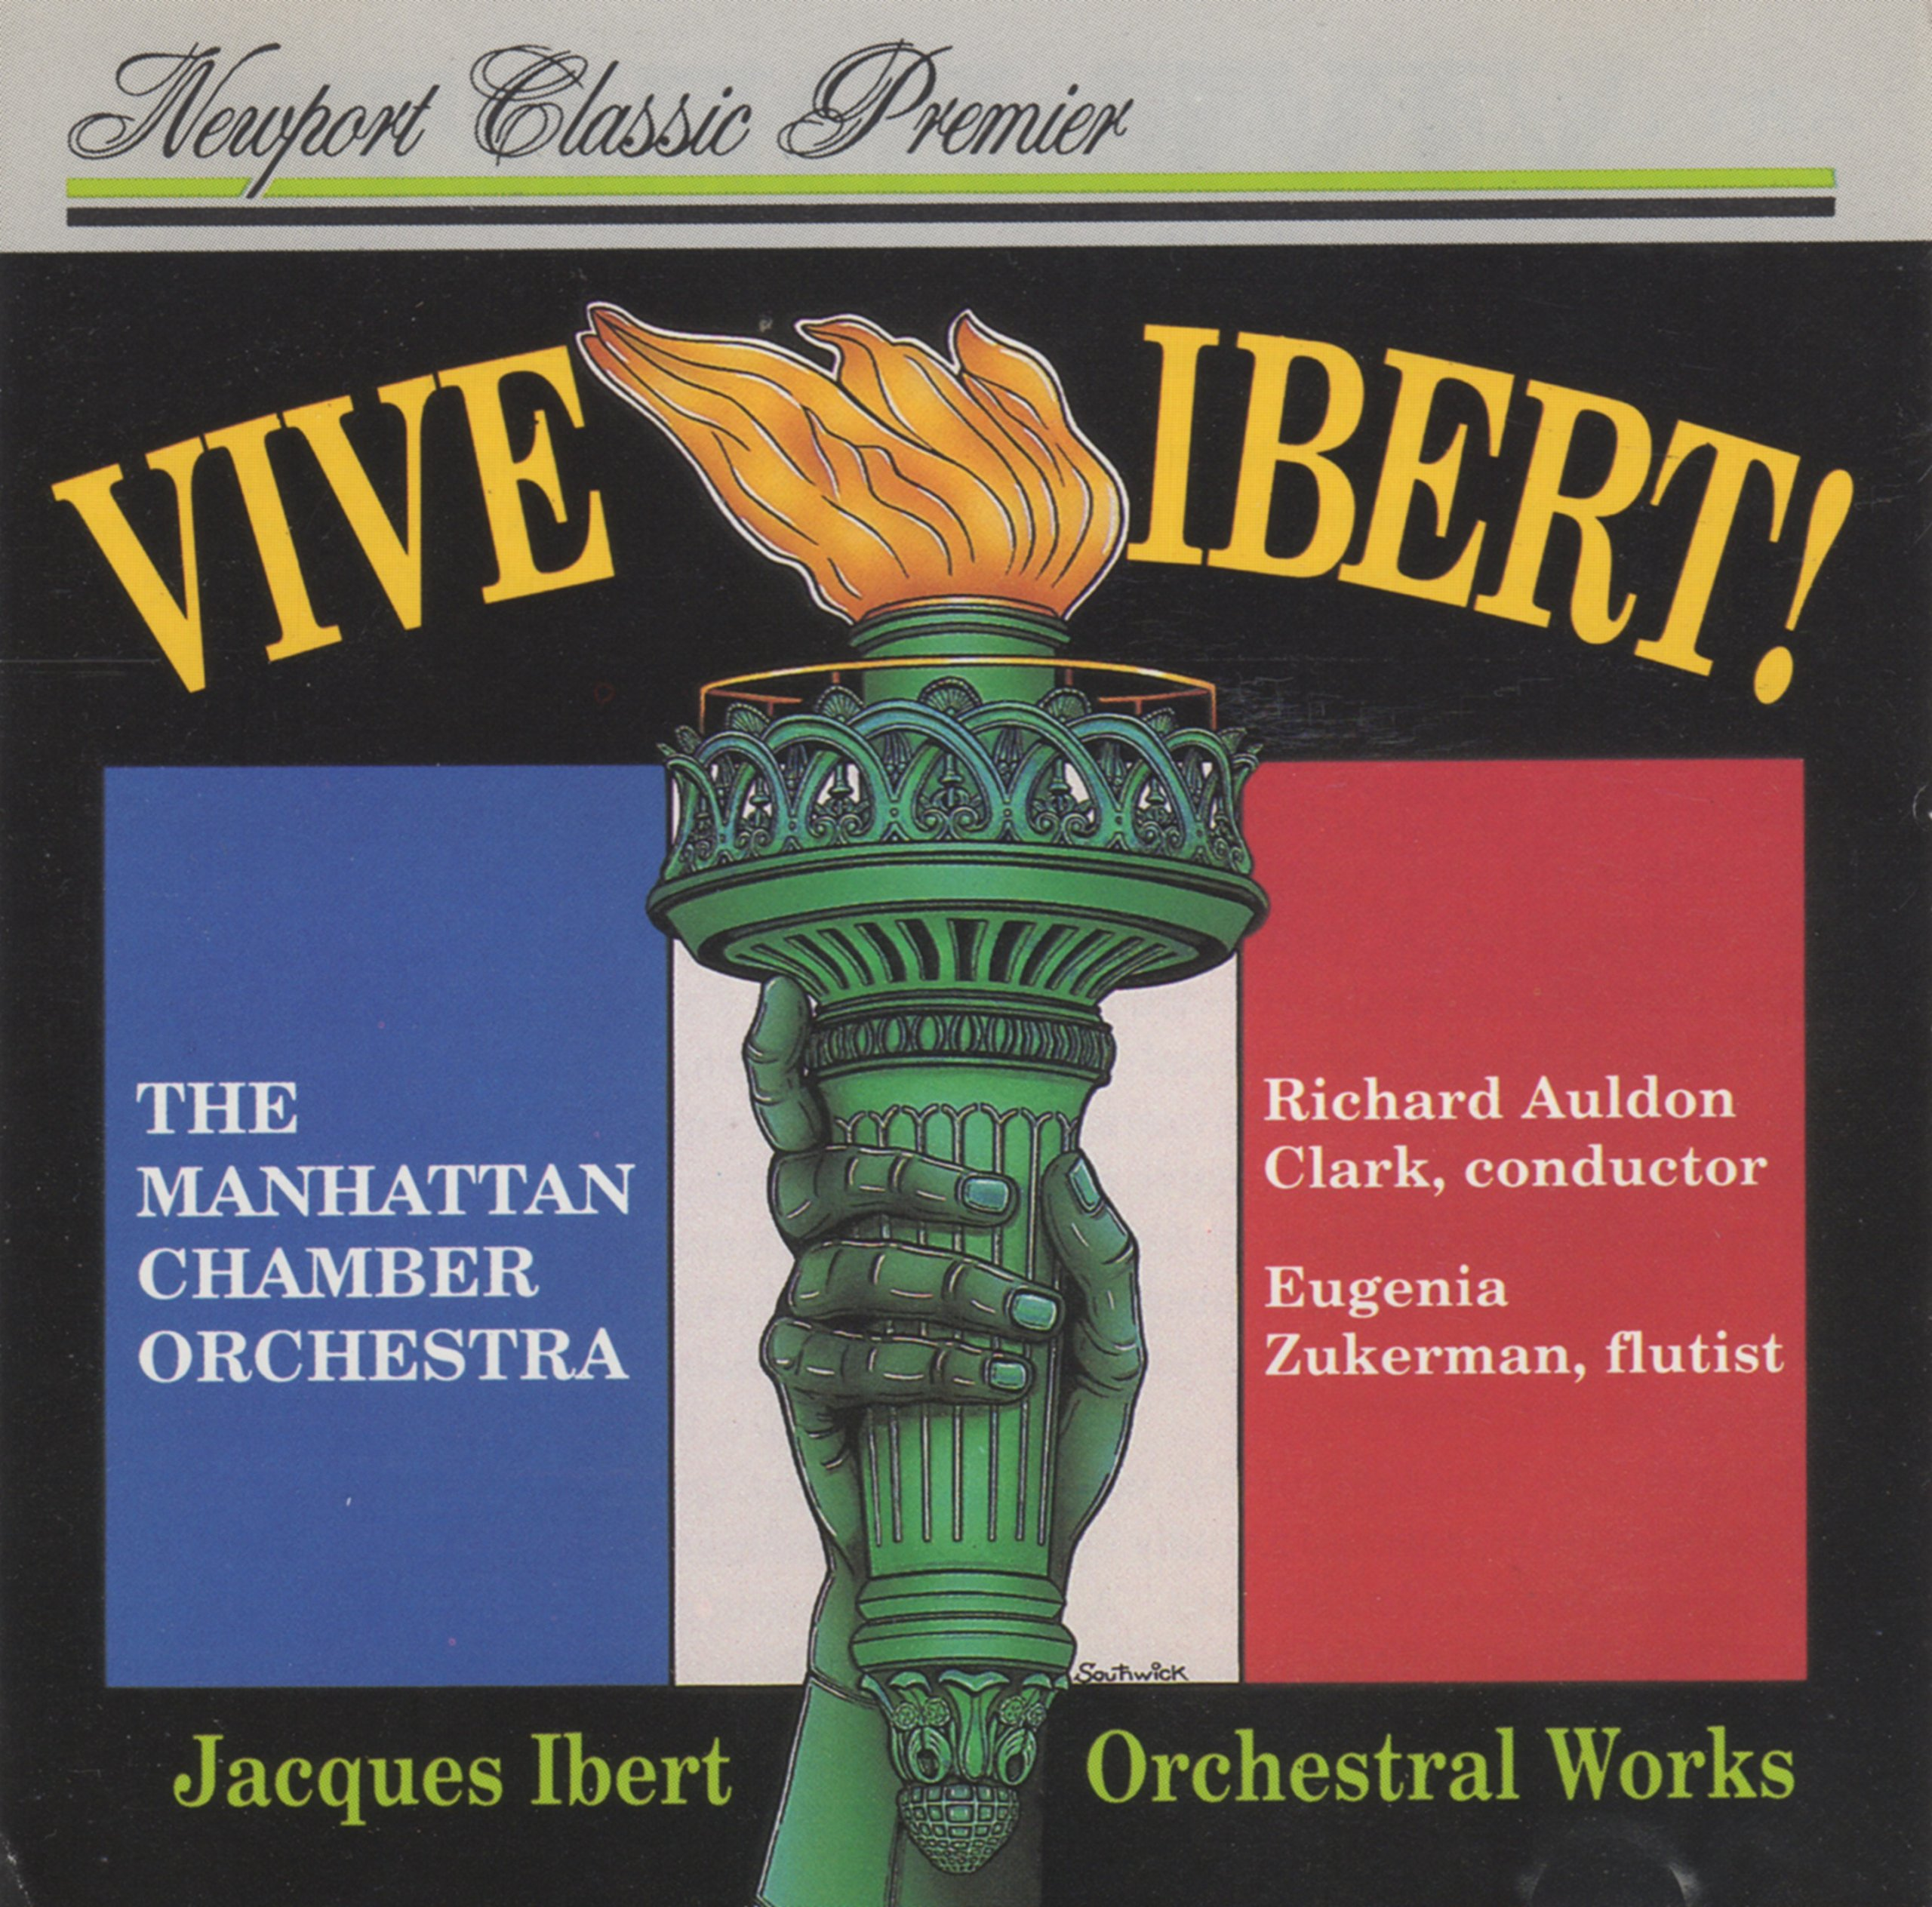 Vive Ibert! Jacques Ibert Orchestral Works